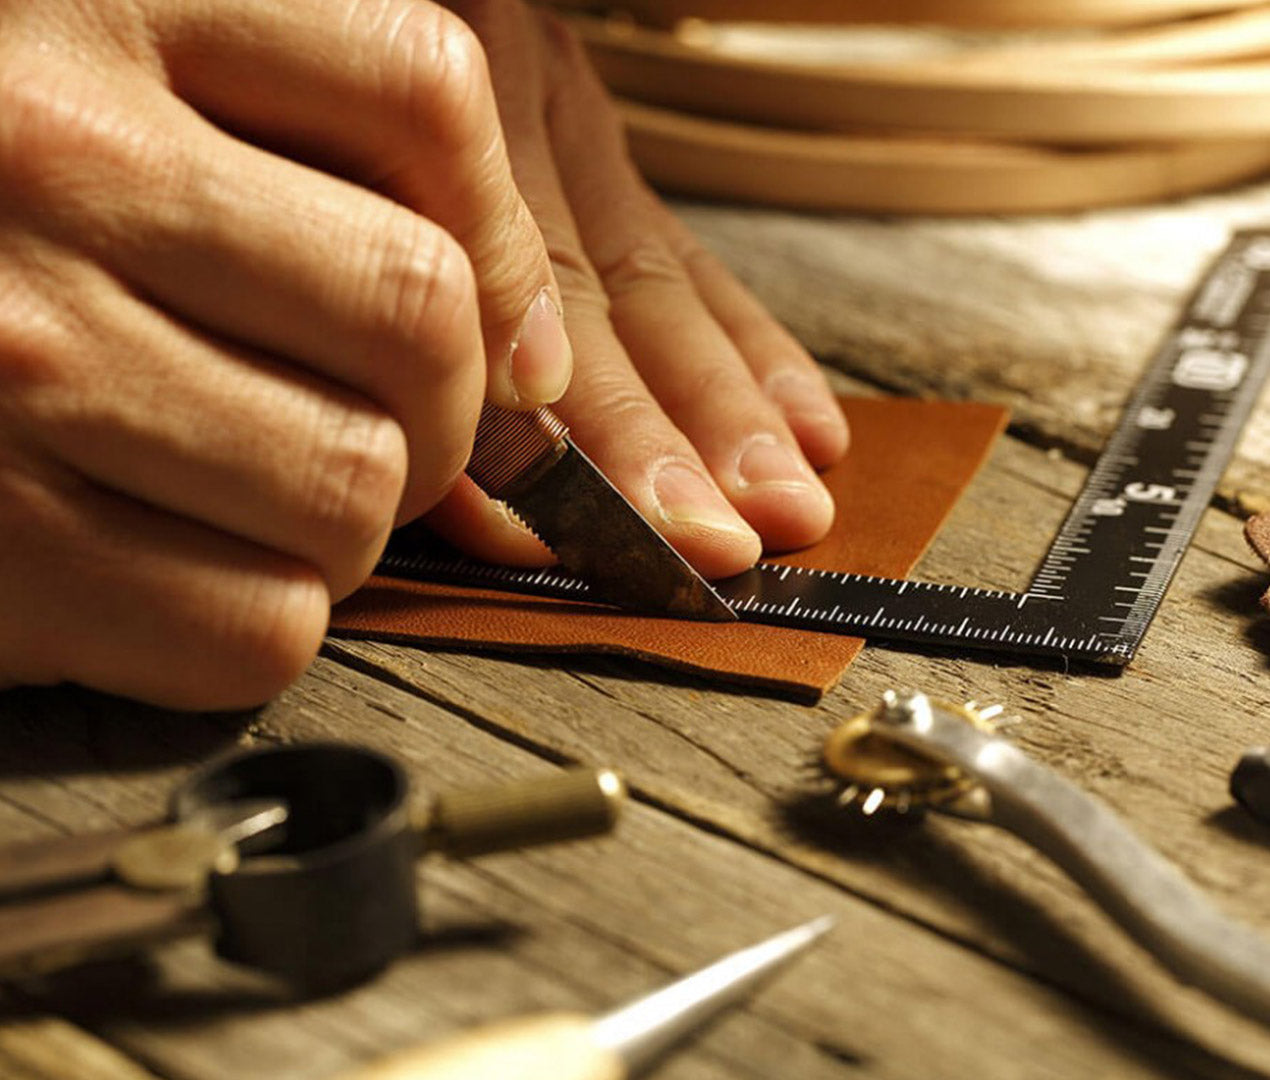 Hacks For Leather Craft Lovers That Will Make Your Life Much Simpler